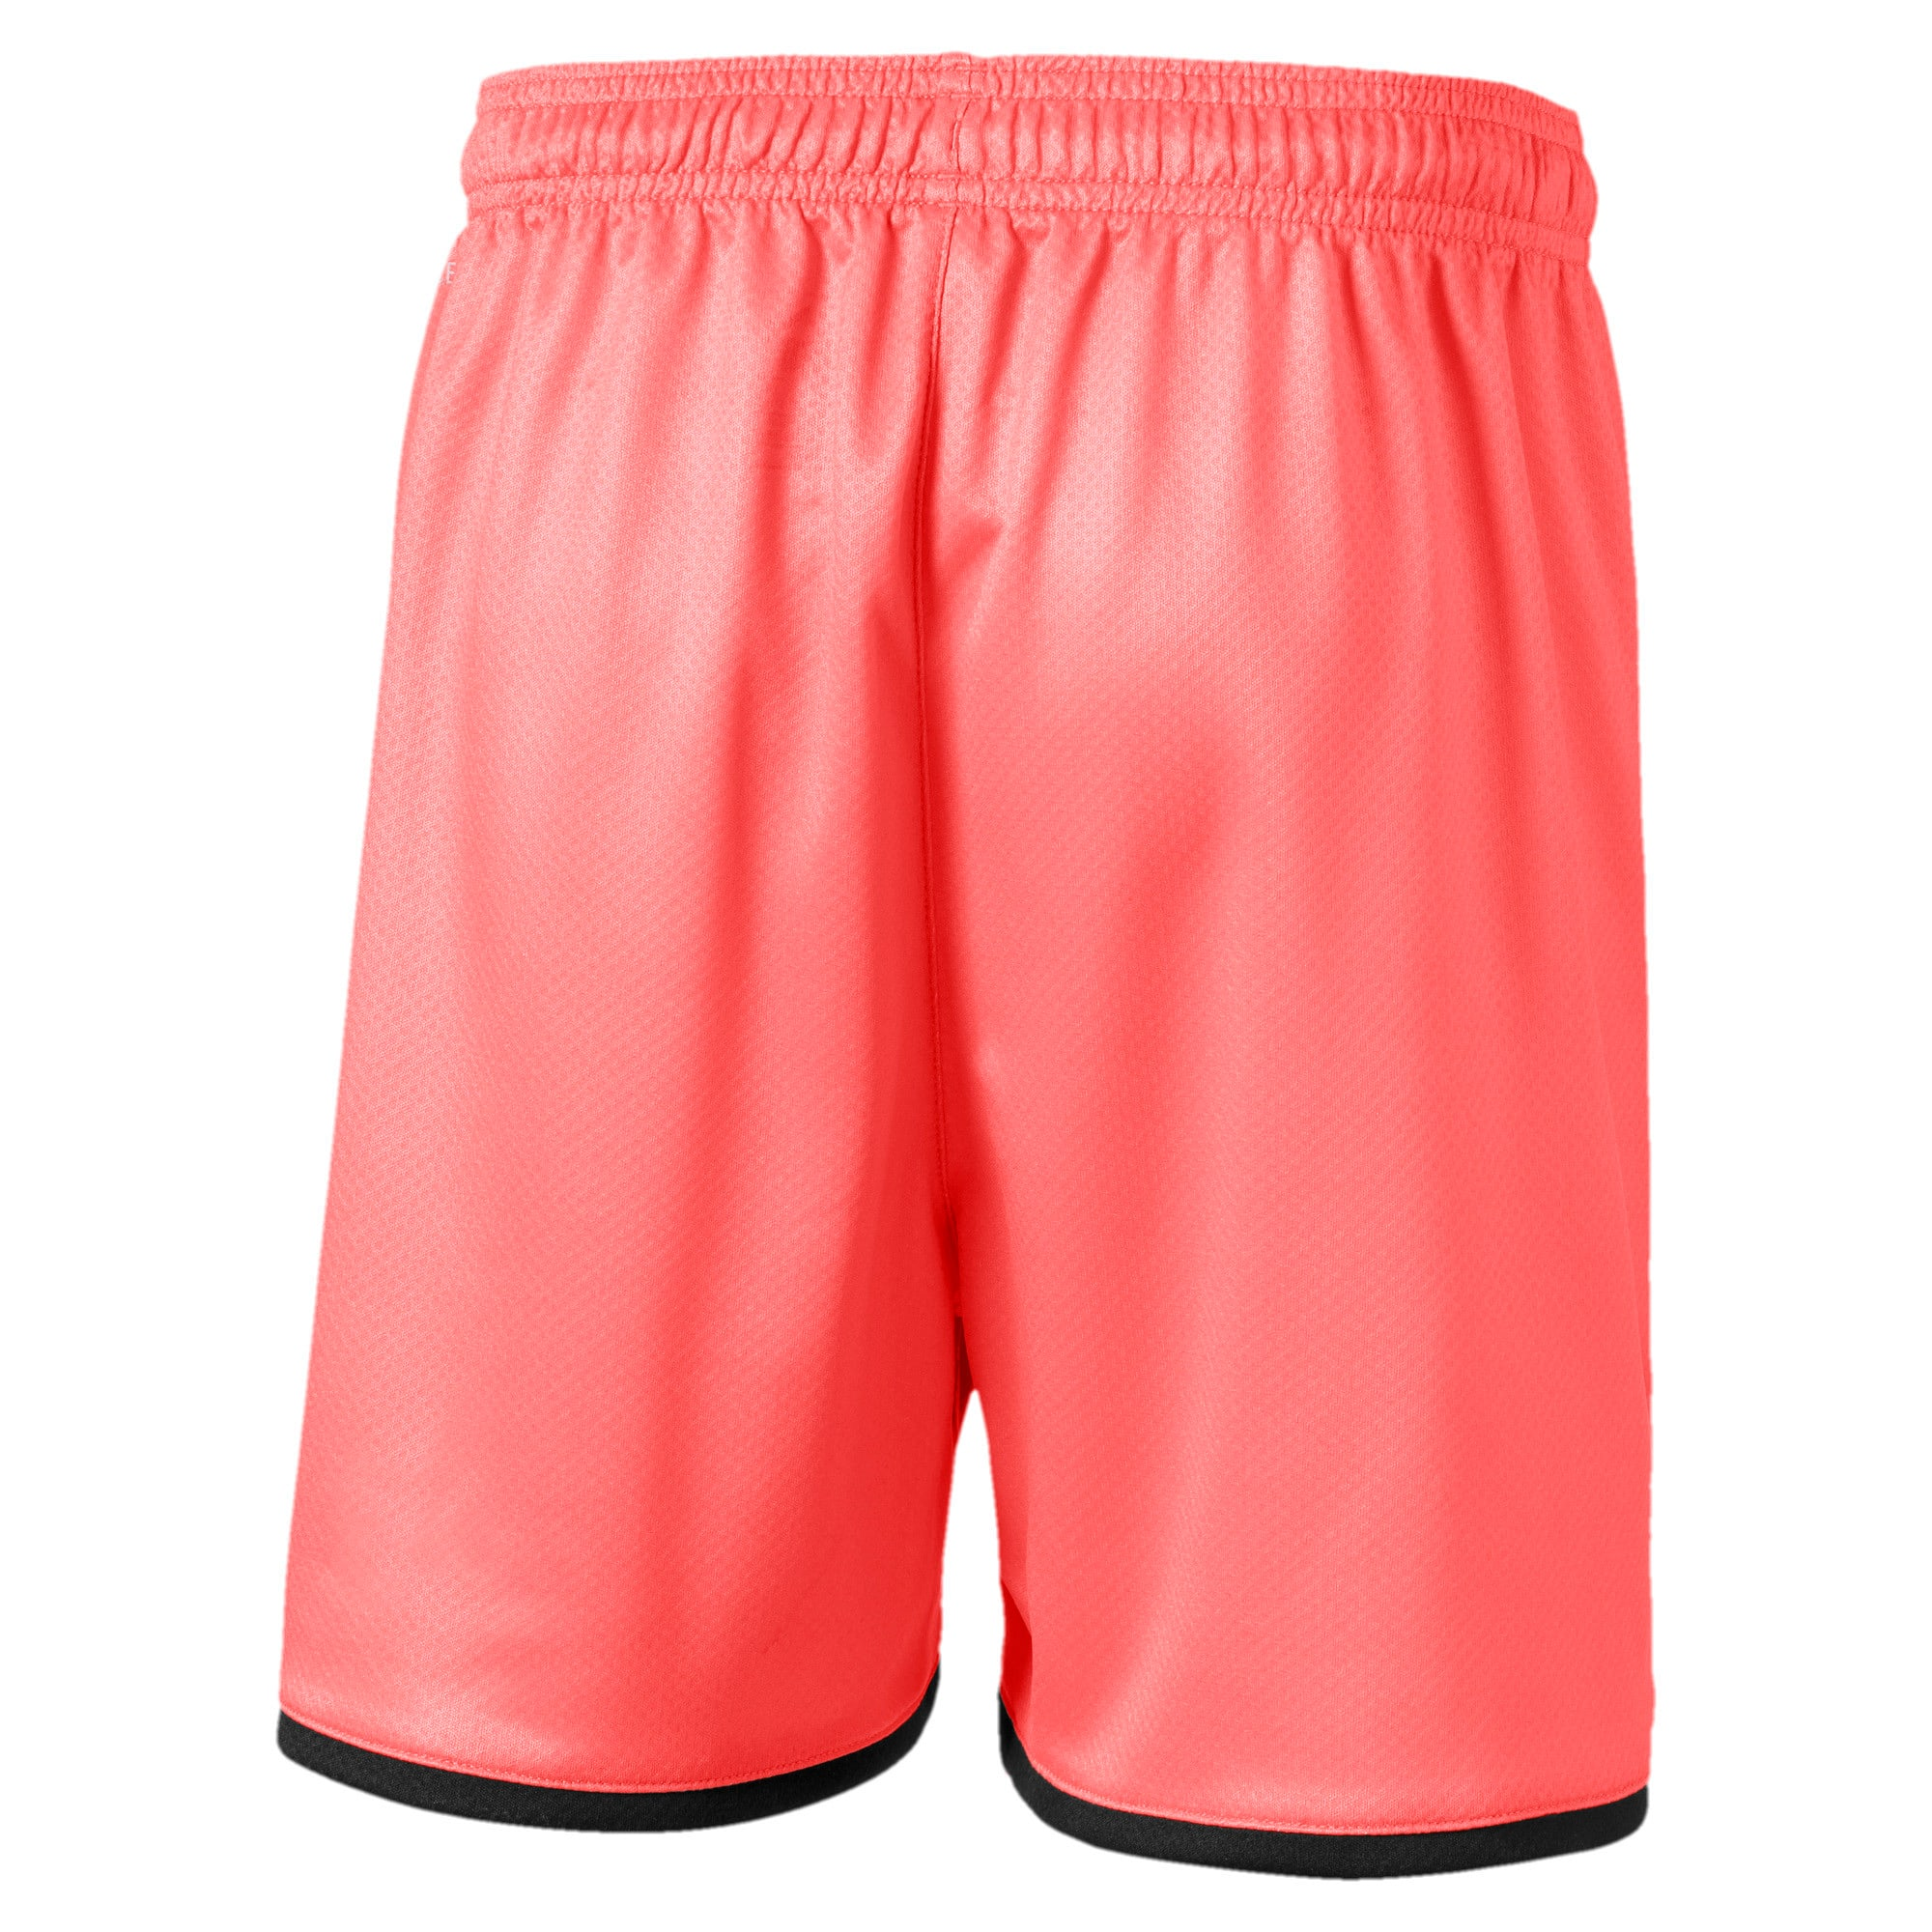 Thumbnail 2 of Manchester City FC Kids' Third Replica Shorts, Georgia Peach-Puma Black, medium